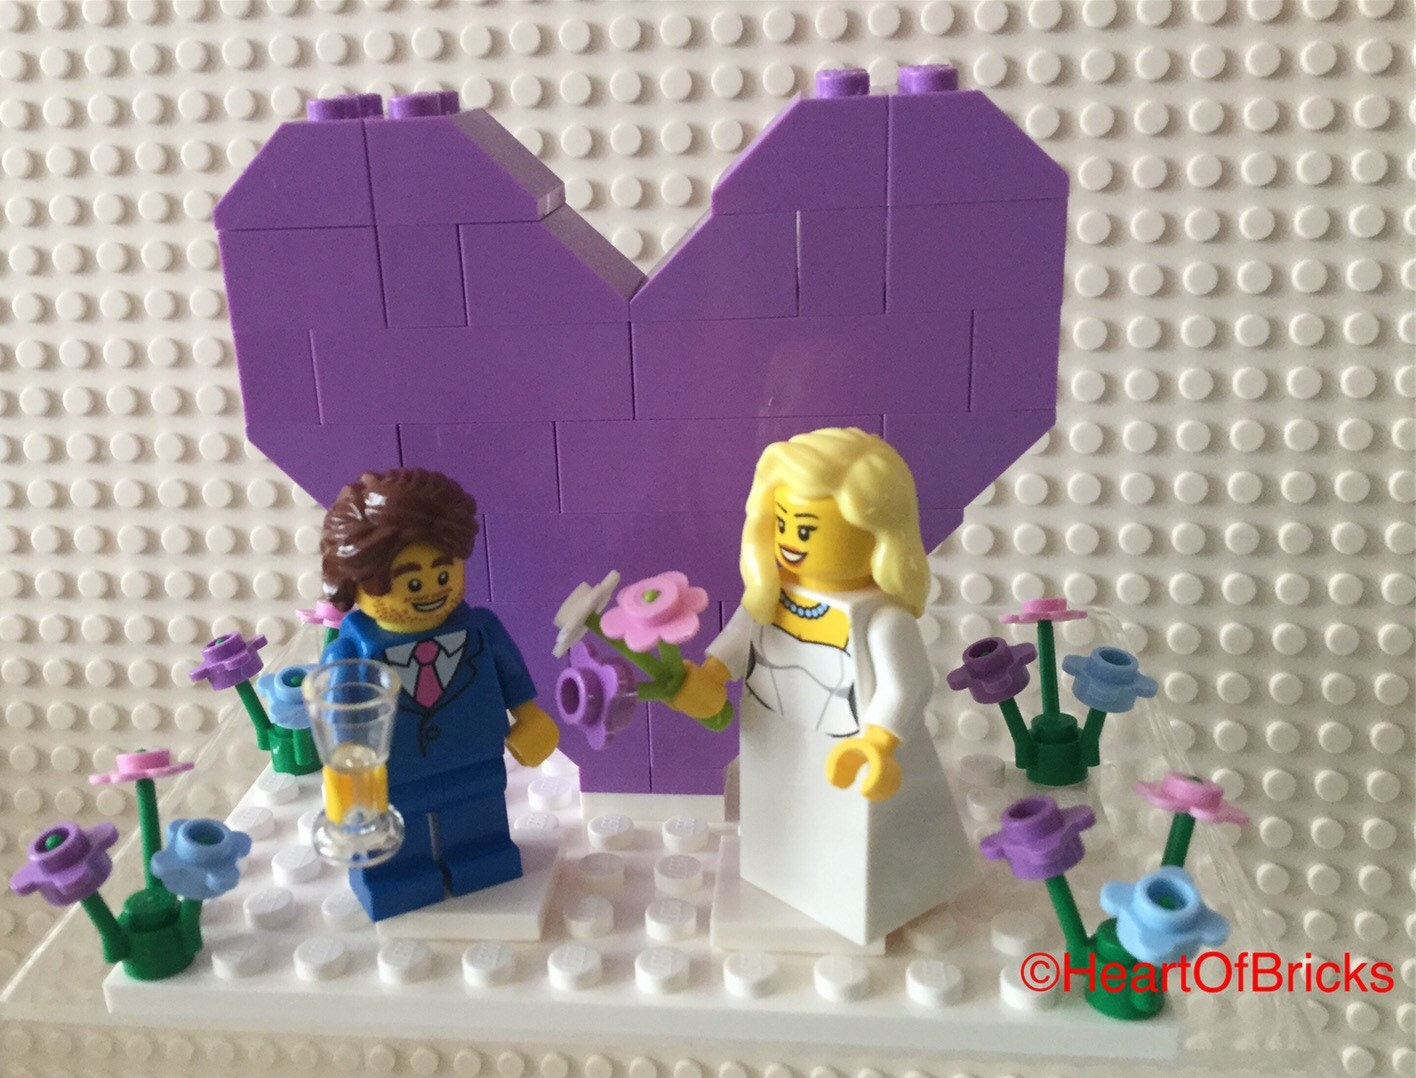 Lego Wedding Minifigs Bride and Groom with 3 Flowers Red Pink White